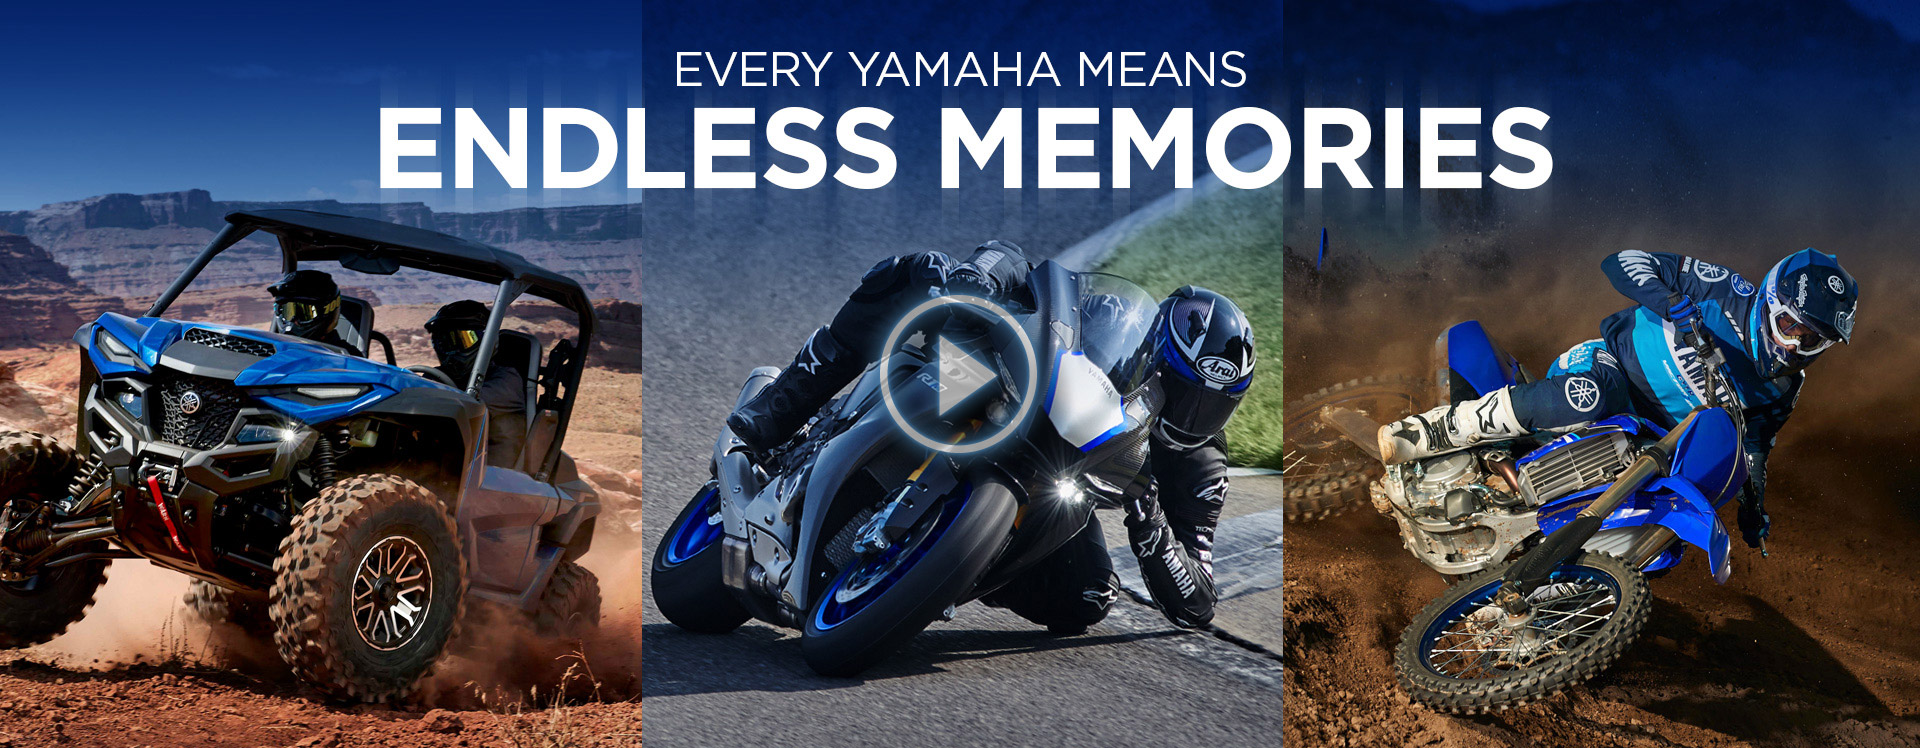 Every Yamaha Means Endless Memories